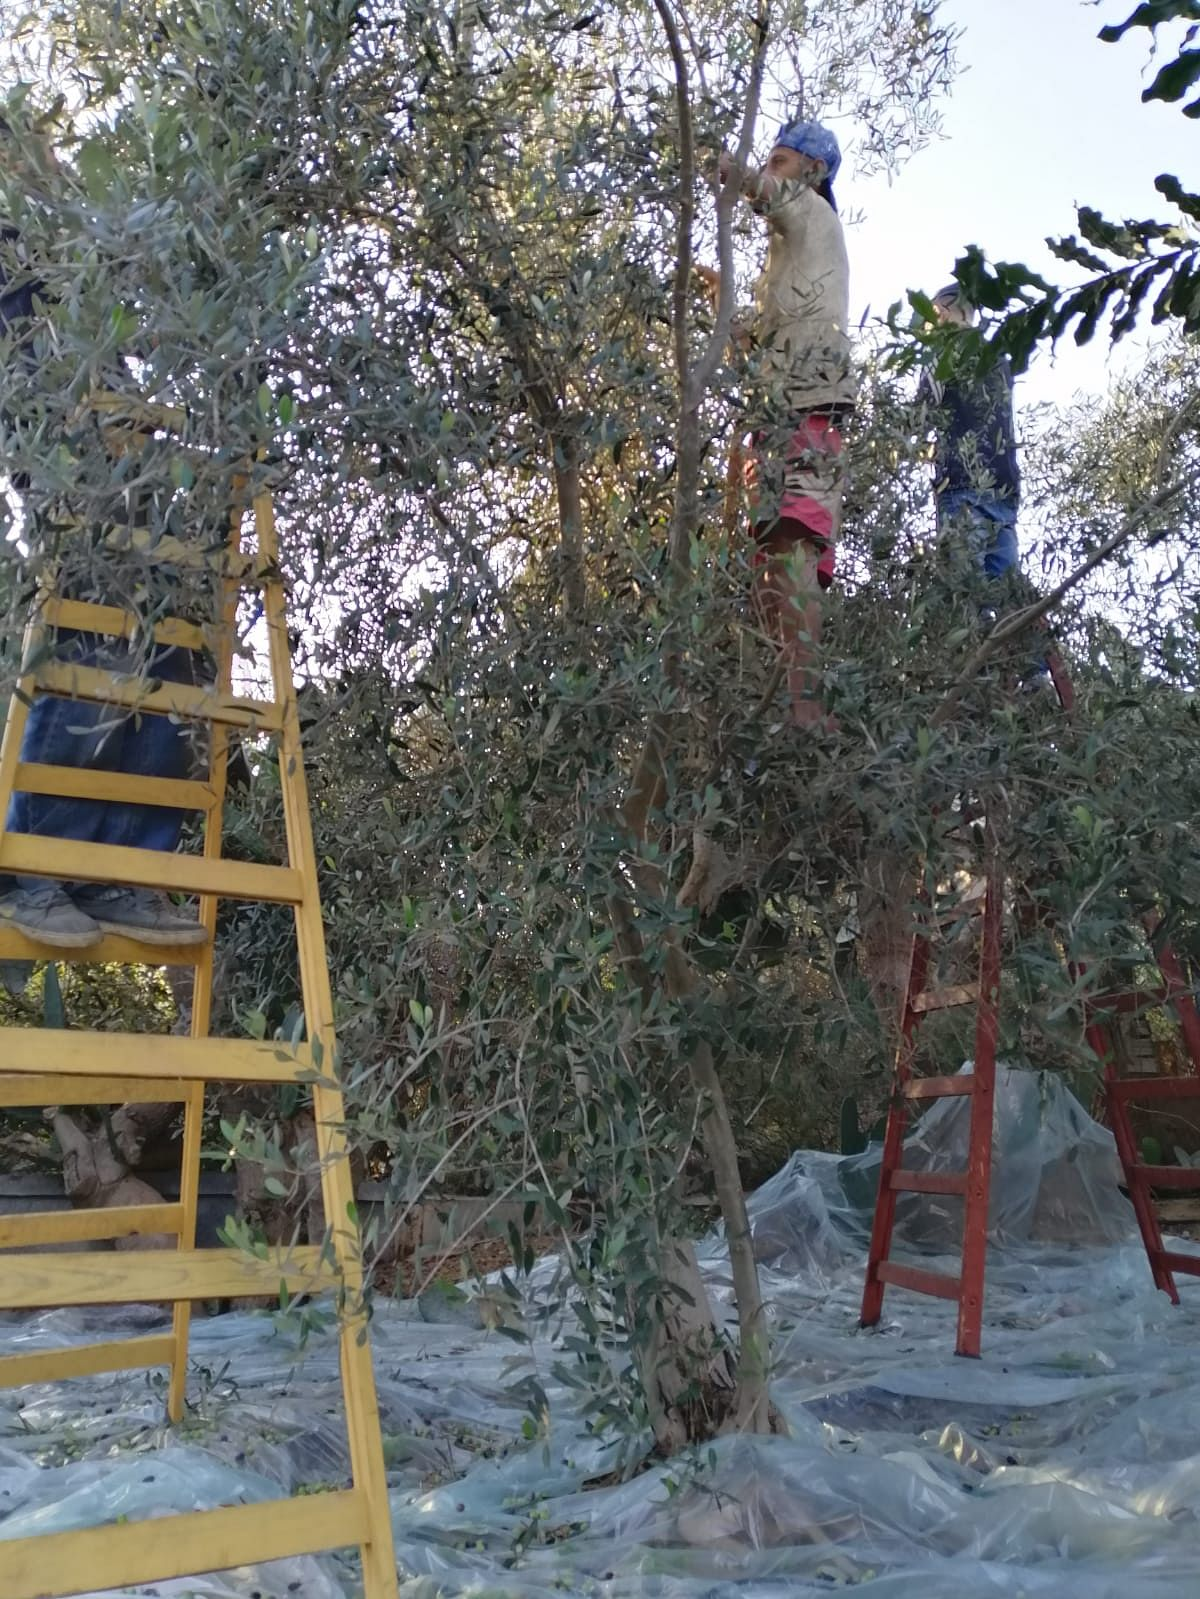 It is a common vision of finding at least one olive tree in each house in Palestine